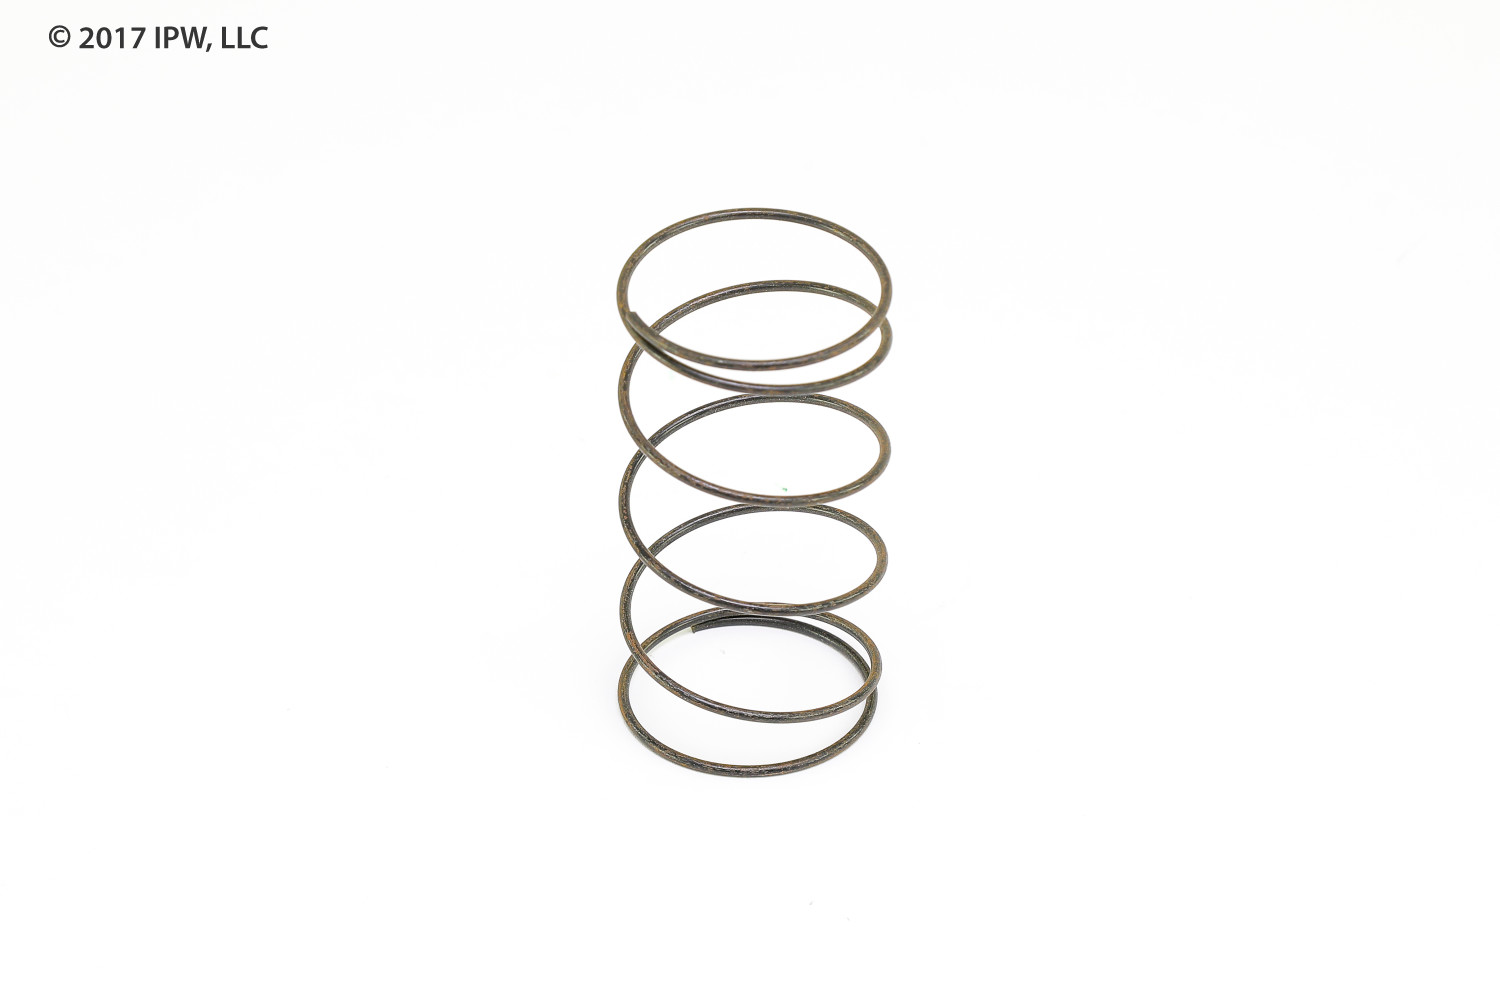 Sensus-Gas Division 143-41-021-00 COUNTER SPRING